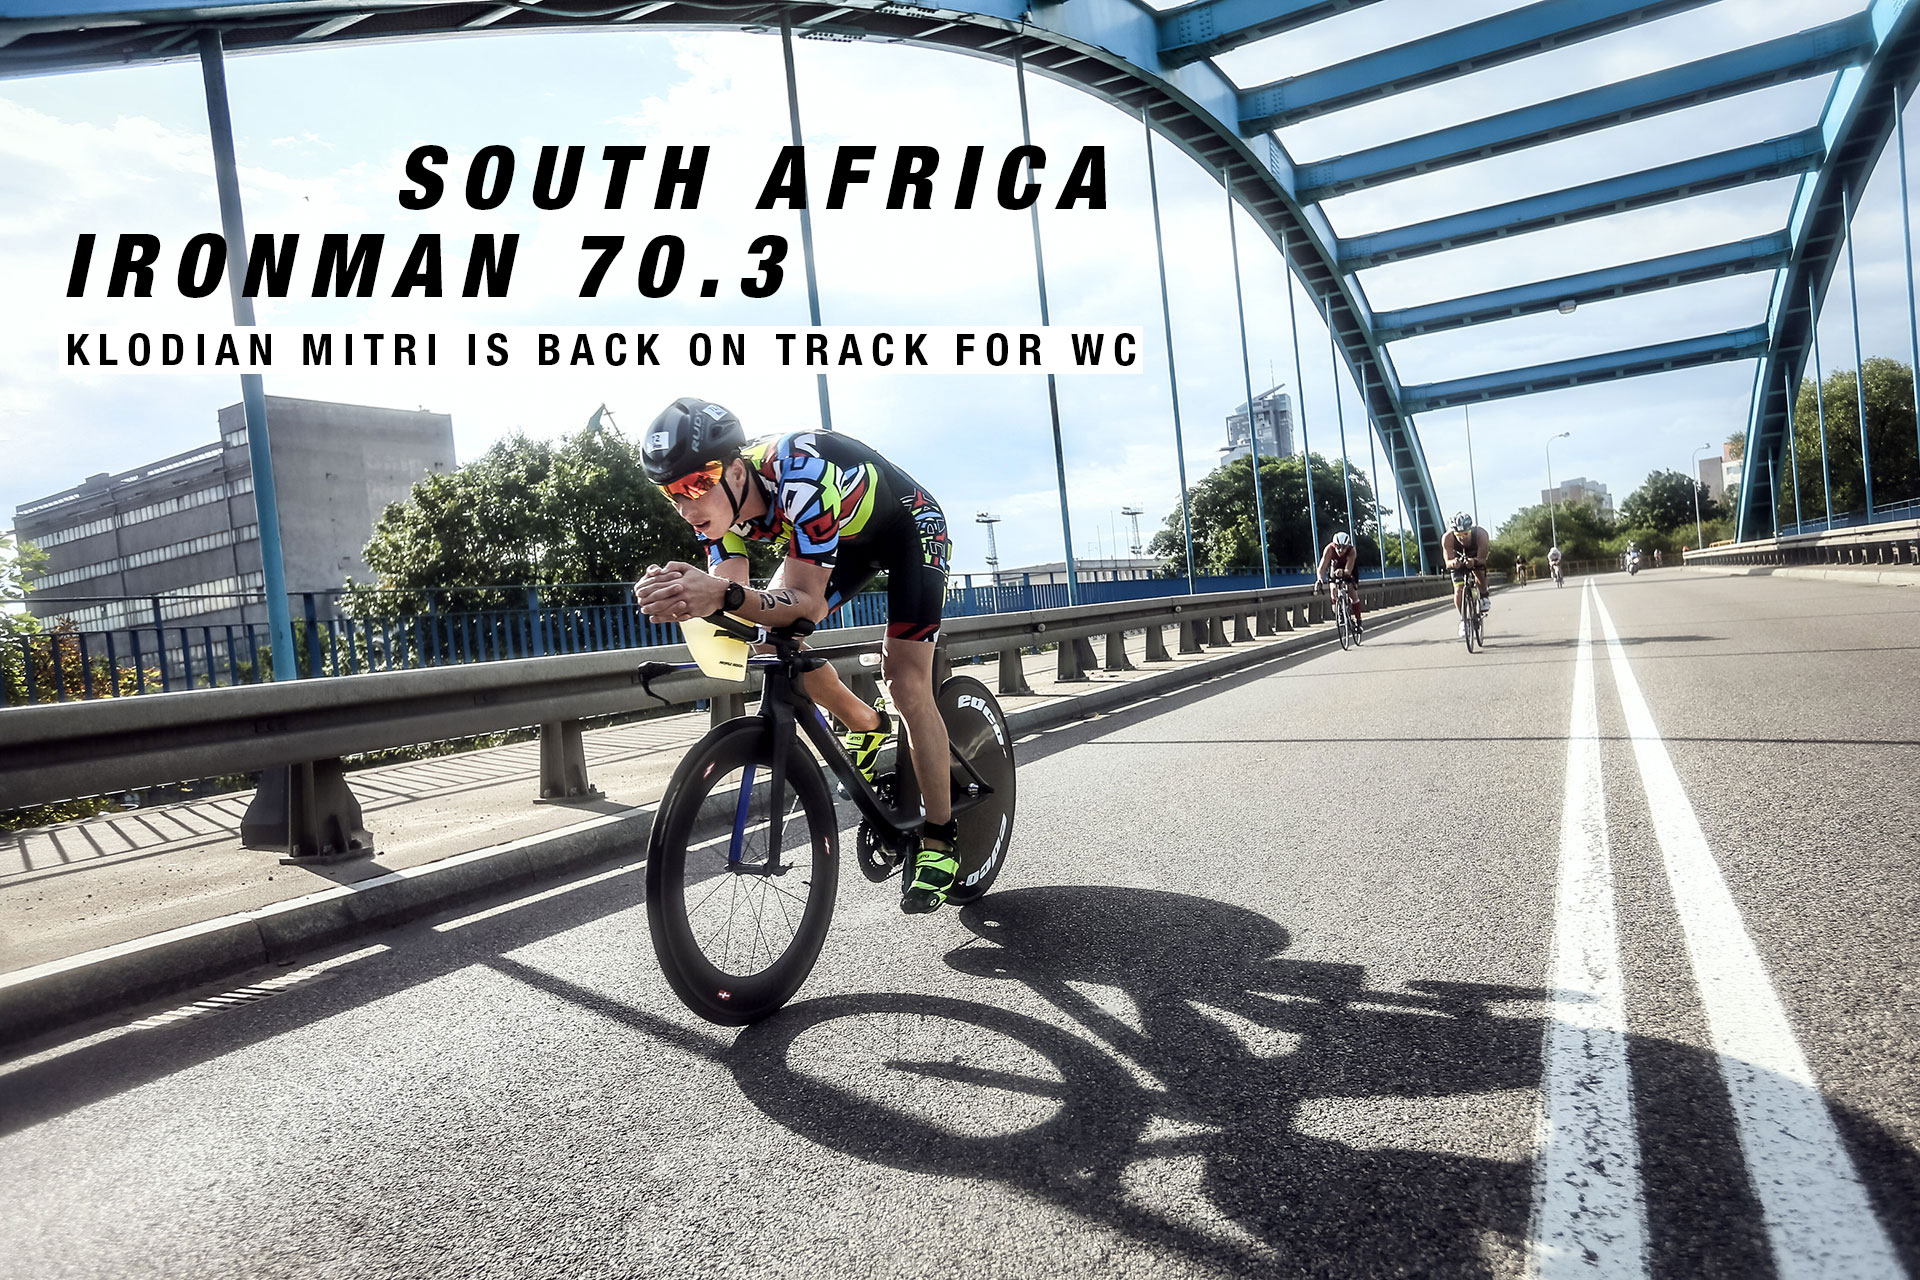 IRONMAN 70.3 SOUTH AFRICA Klodian Mitri is Back on Track for WC / Chasing to make up time and having an aggressive second half of the bike trying to catch-up © klodian mitri